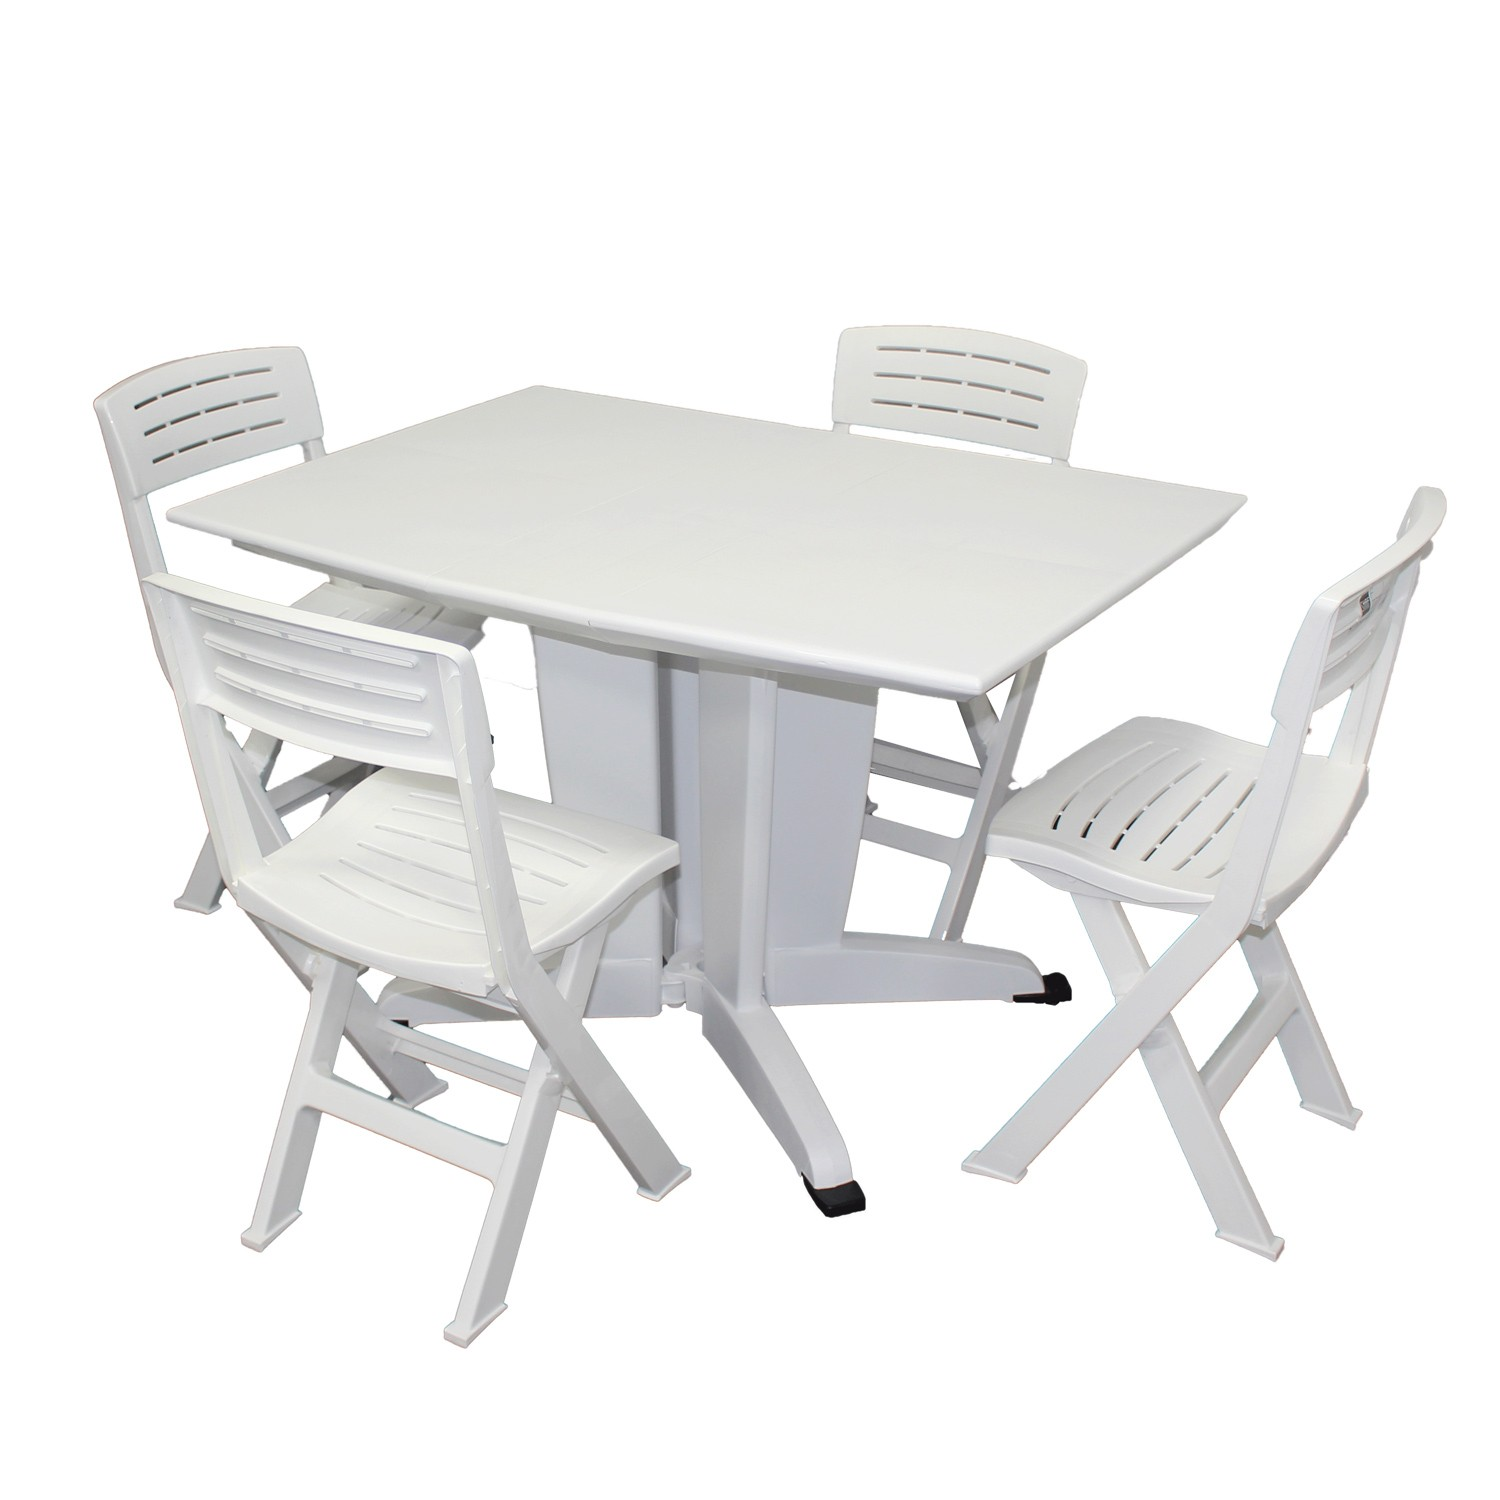 Emejing table de jardin pliante blanc images awesome for Table a manger pliante